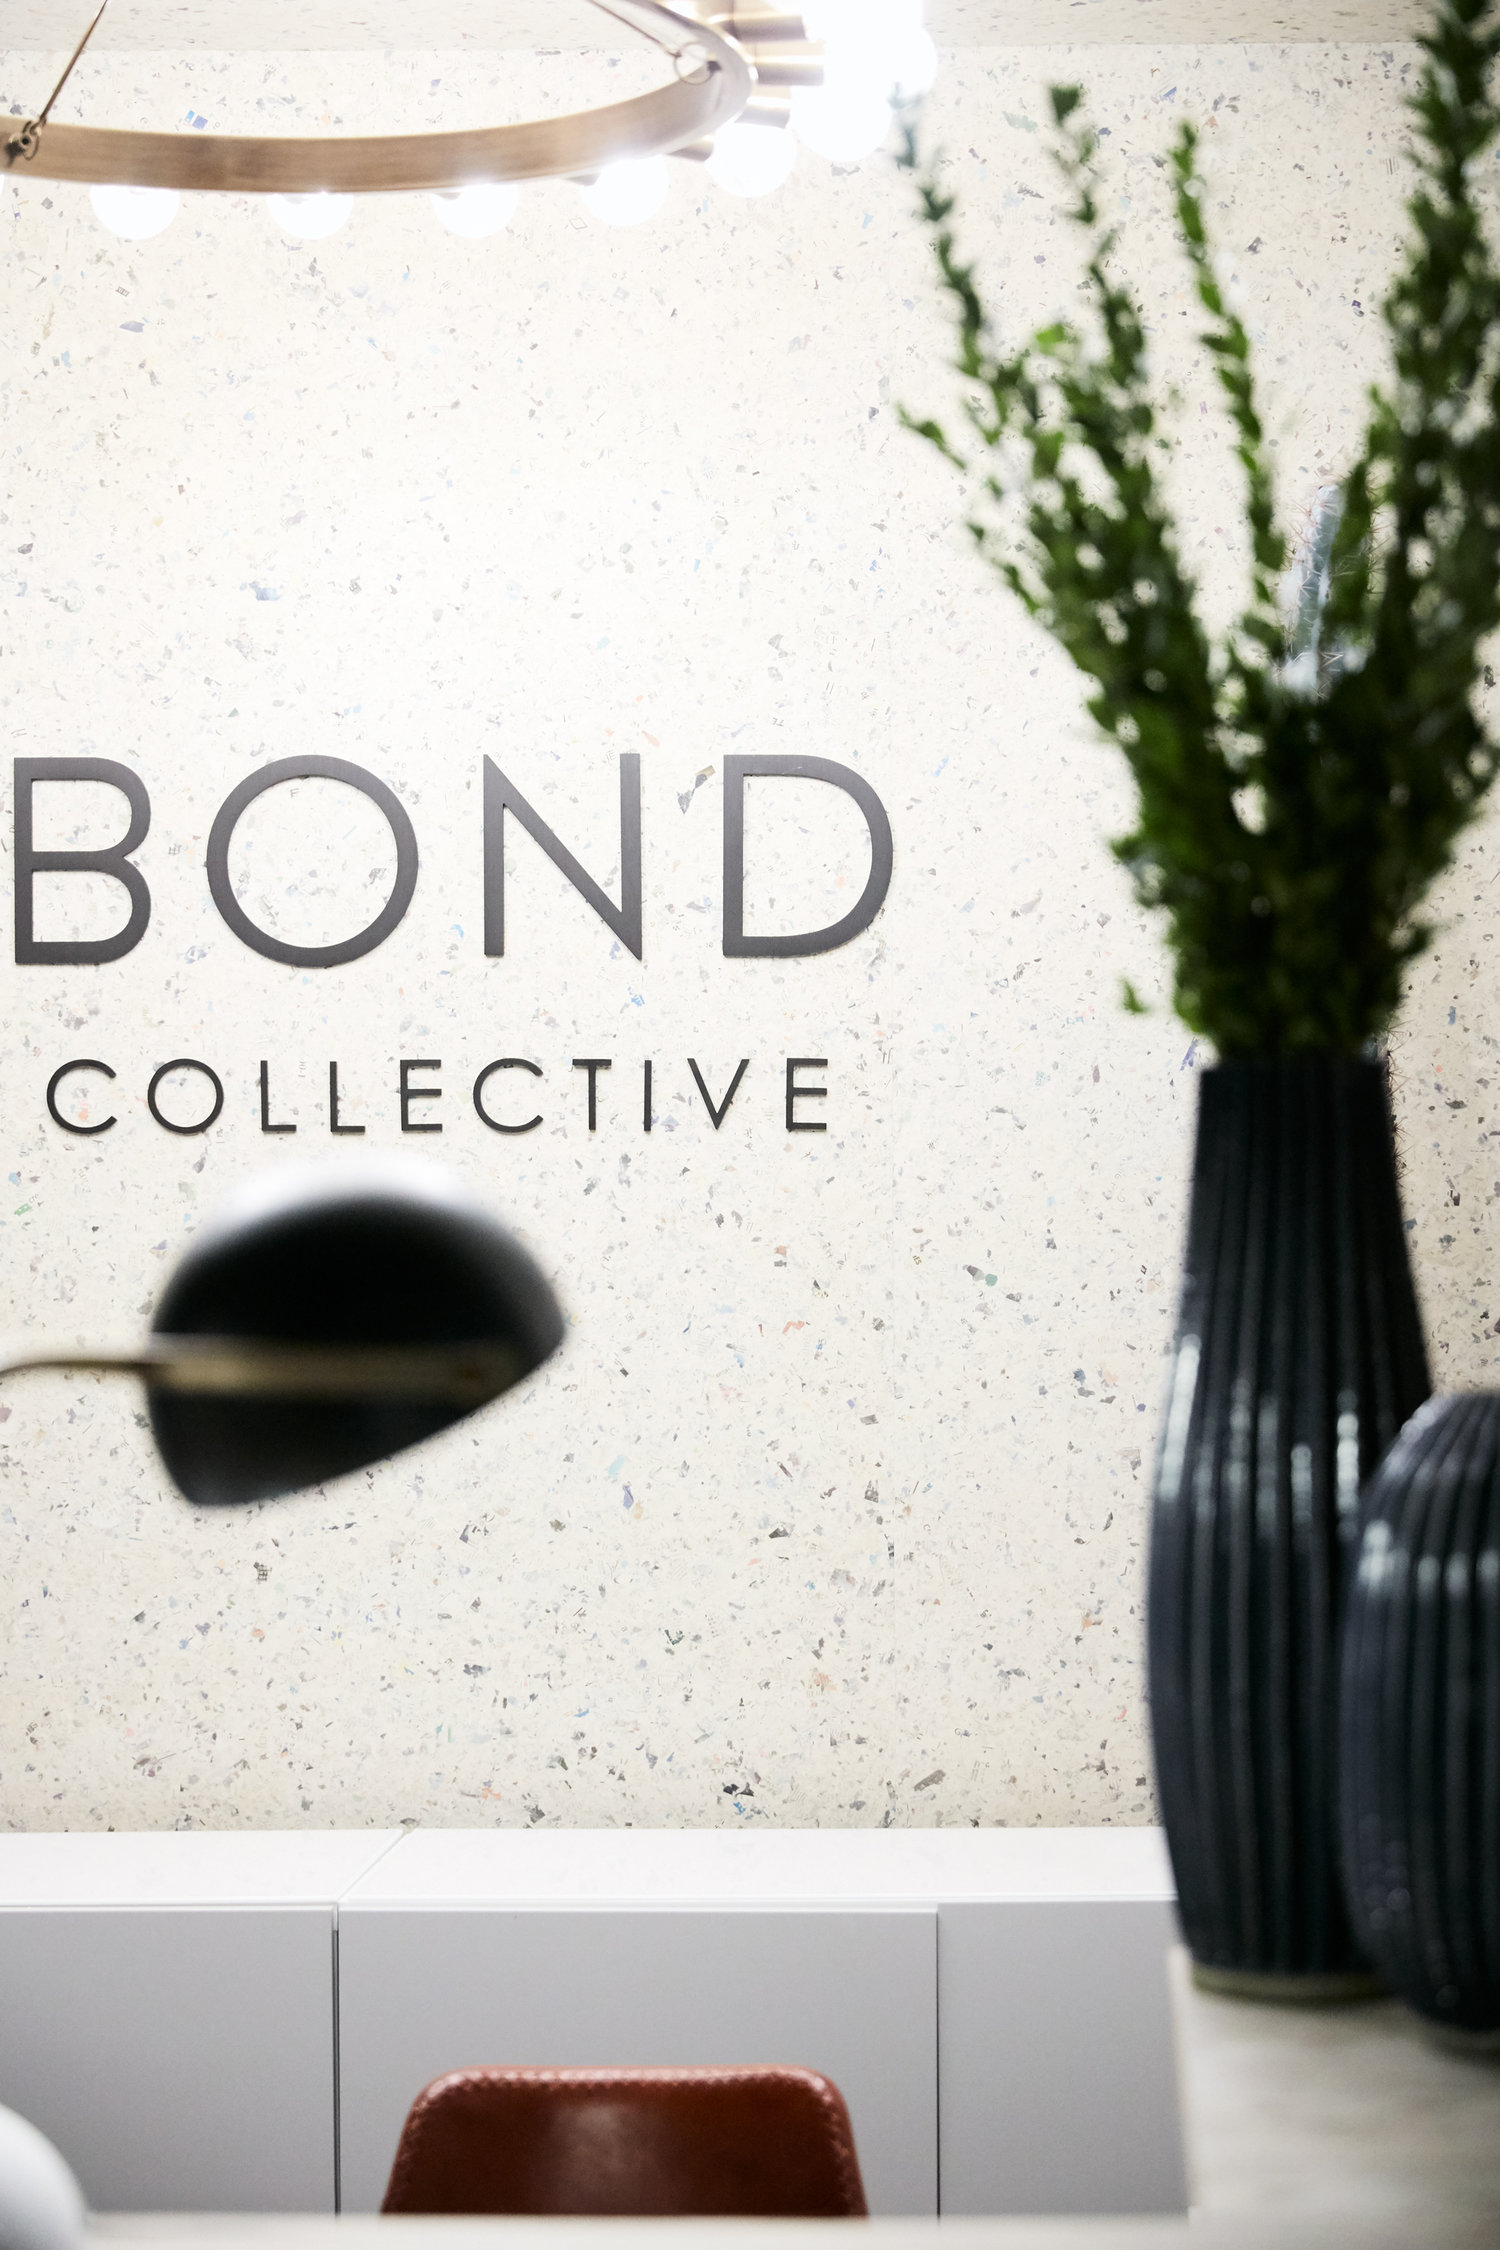 Bond Collective logo next to a plant